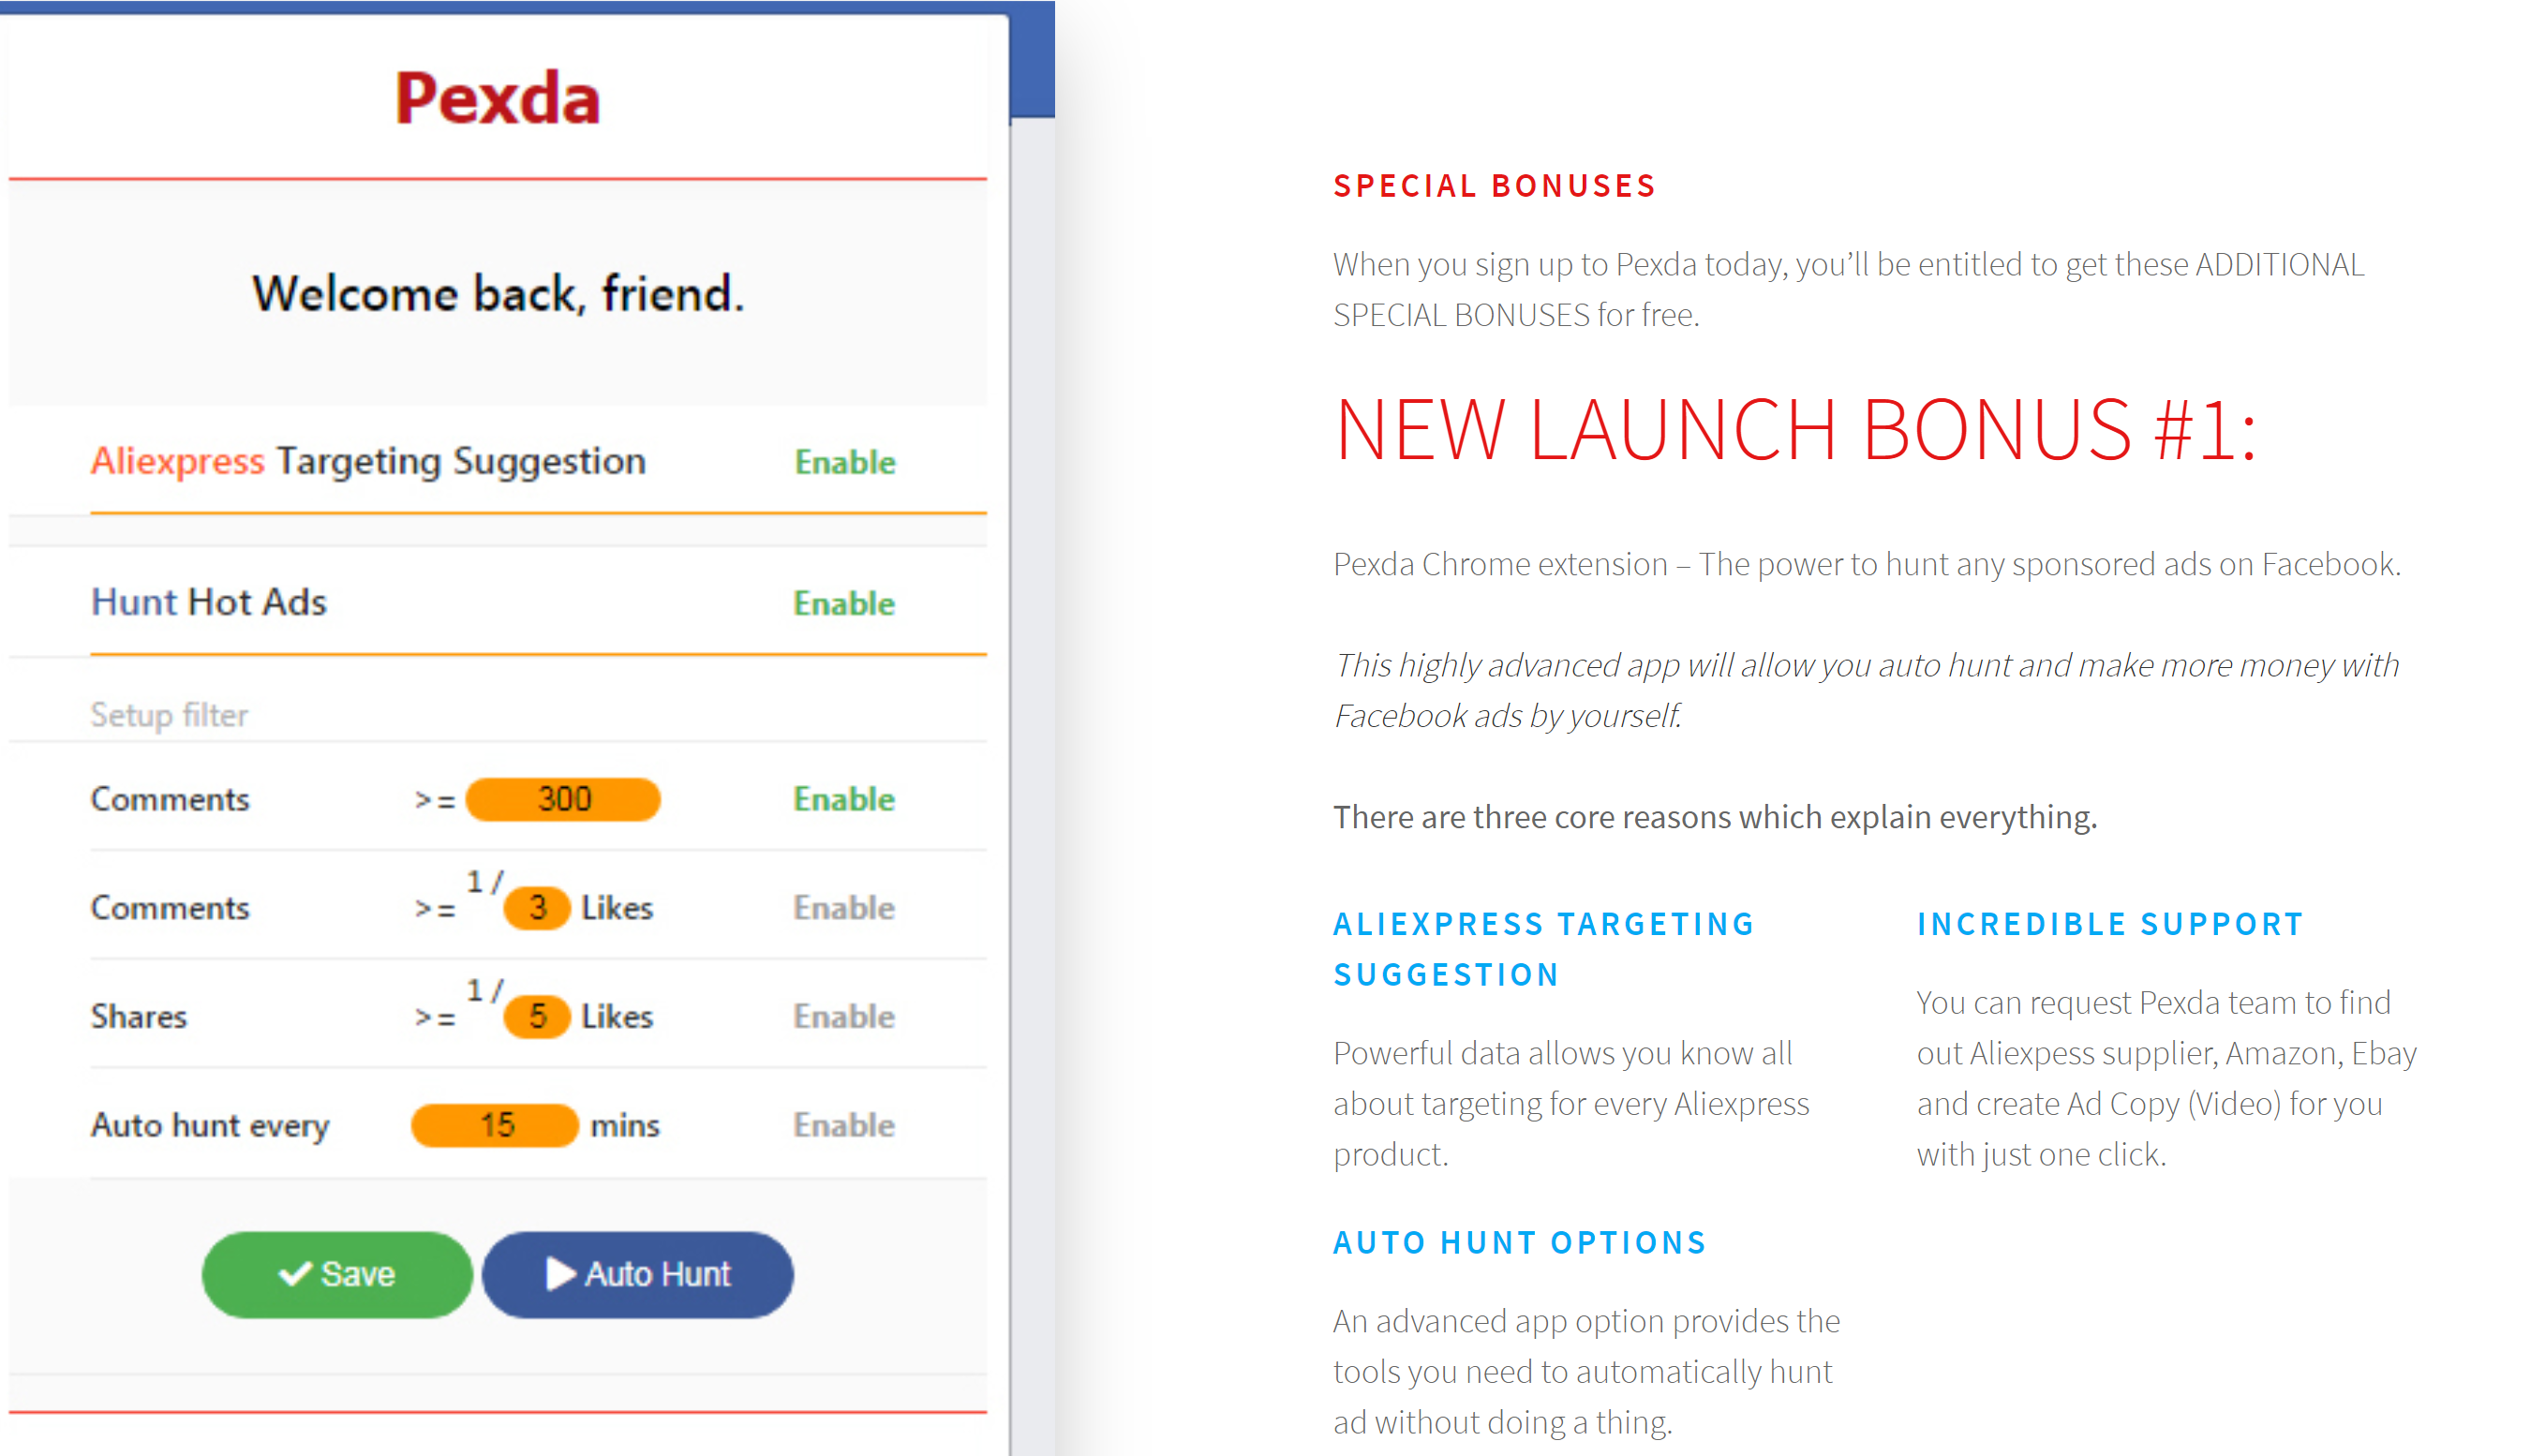 Pexda Chrome extension – The power to hunt any sponsored ads on Facebook.